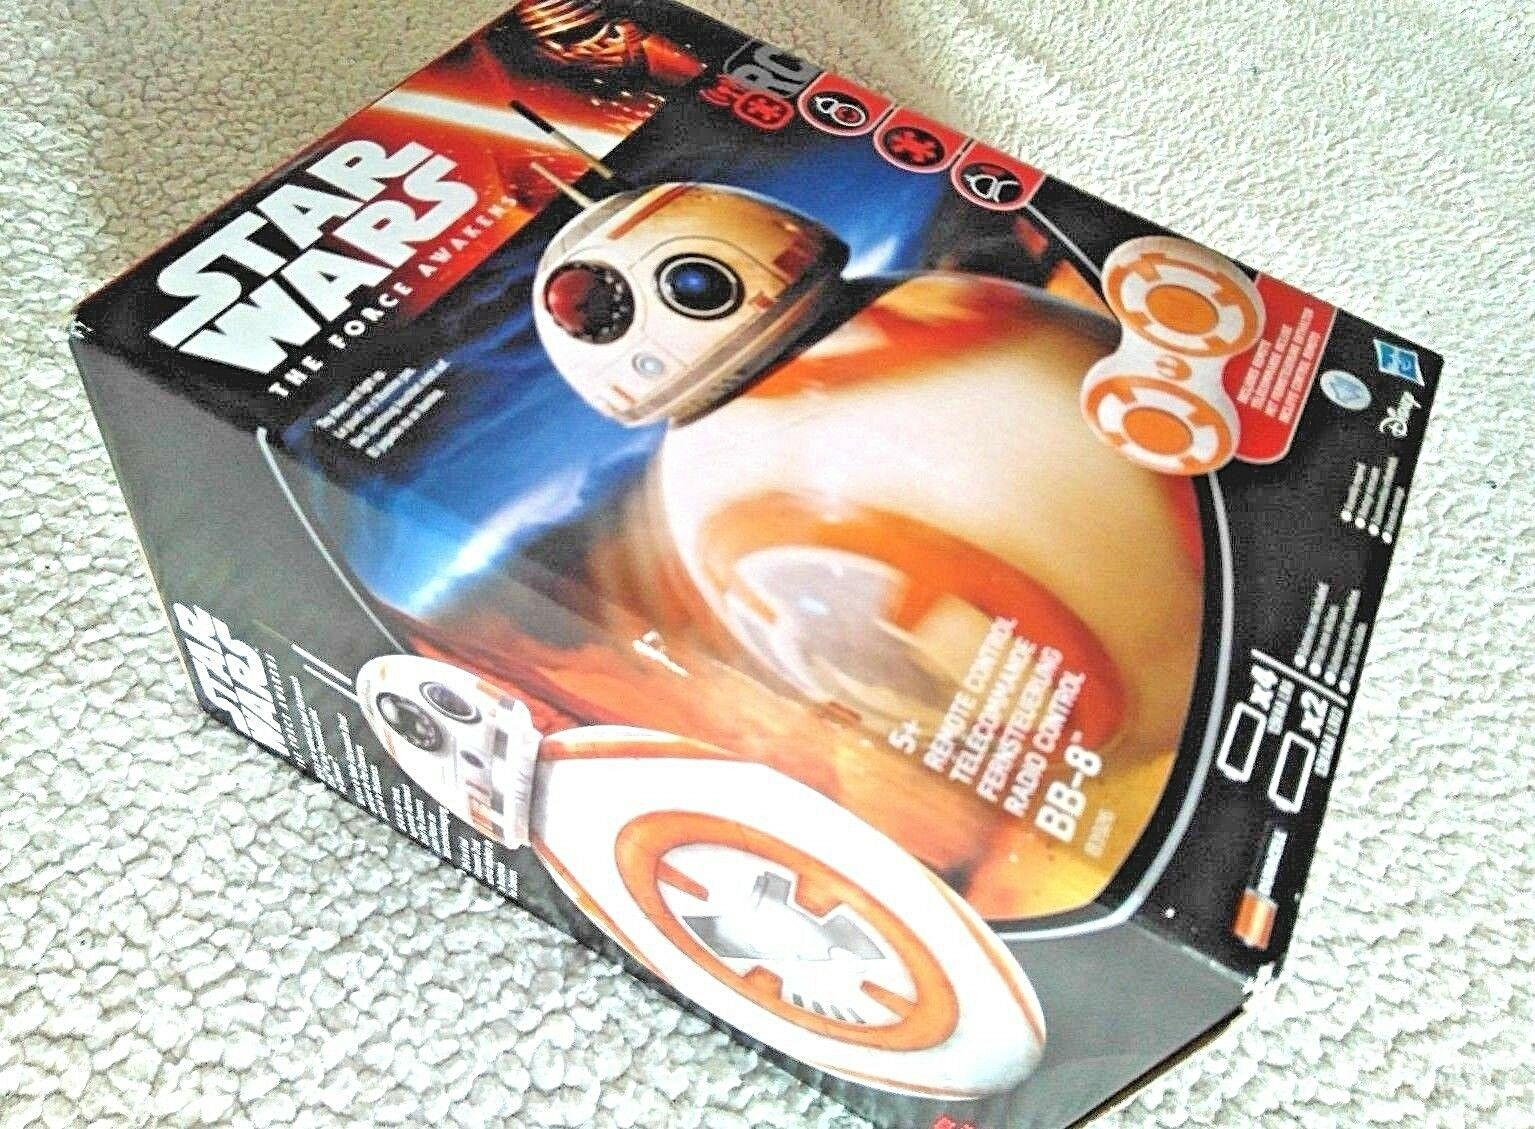 STAR WARS BB-8 REMOTE CONTROL DROID (ROLLS ANY DIRECTION, SOUNDS ). BRAND NEW